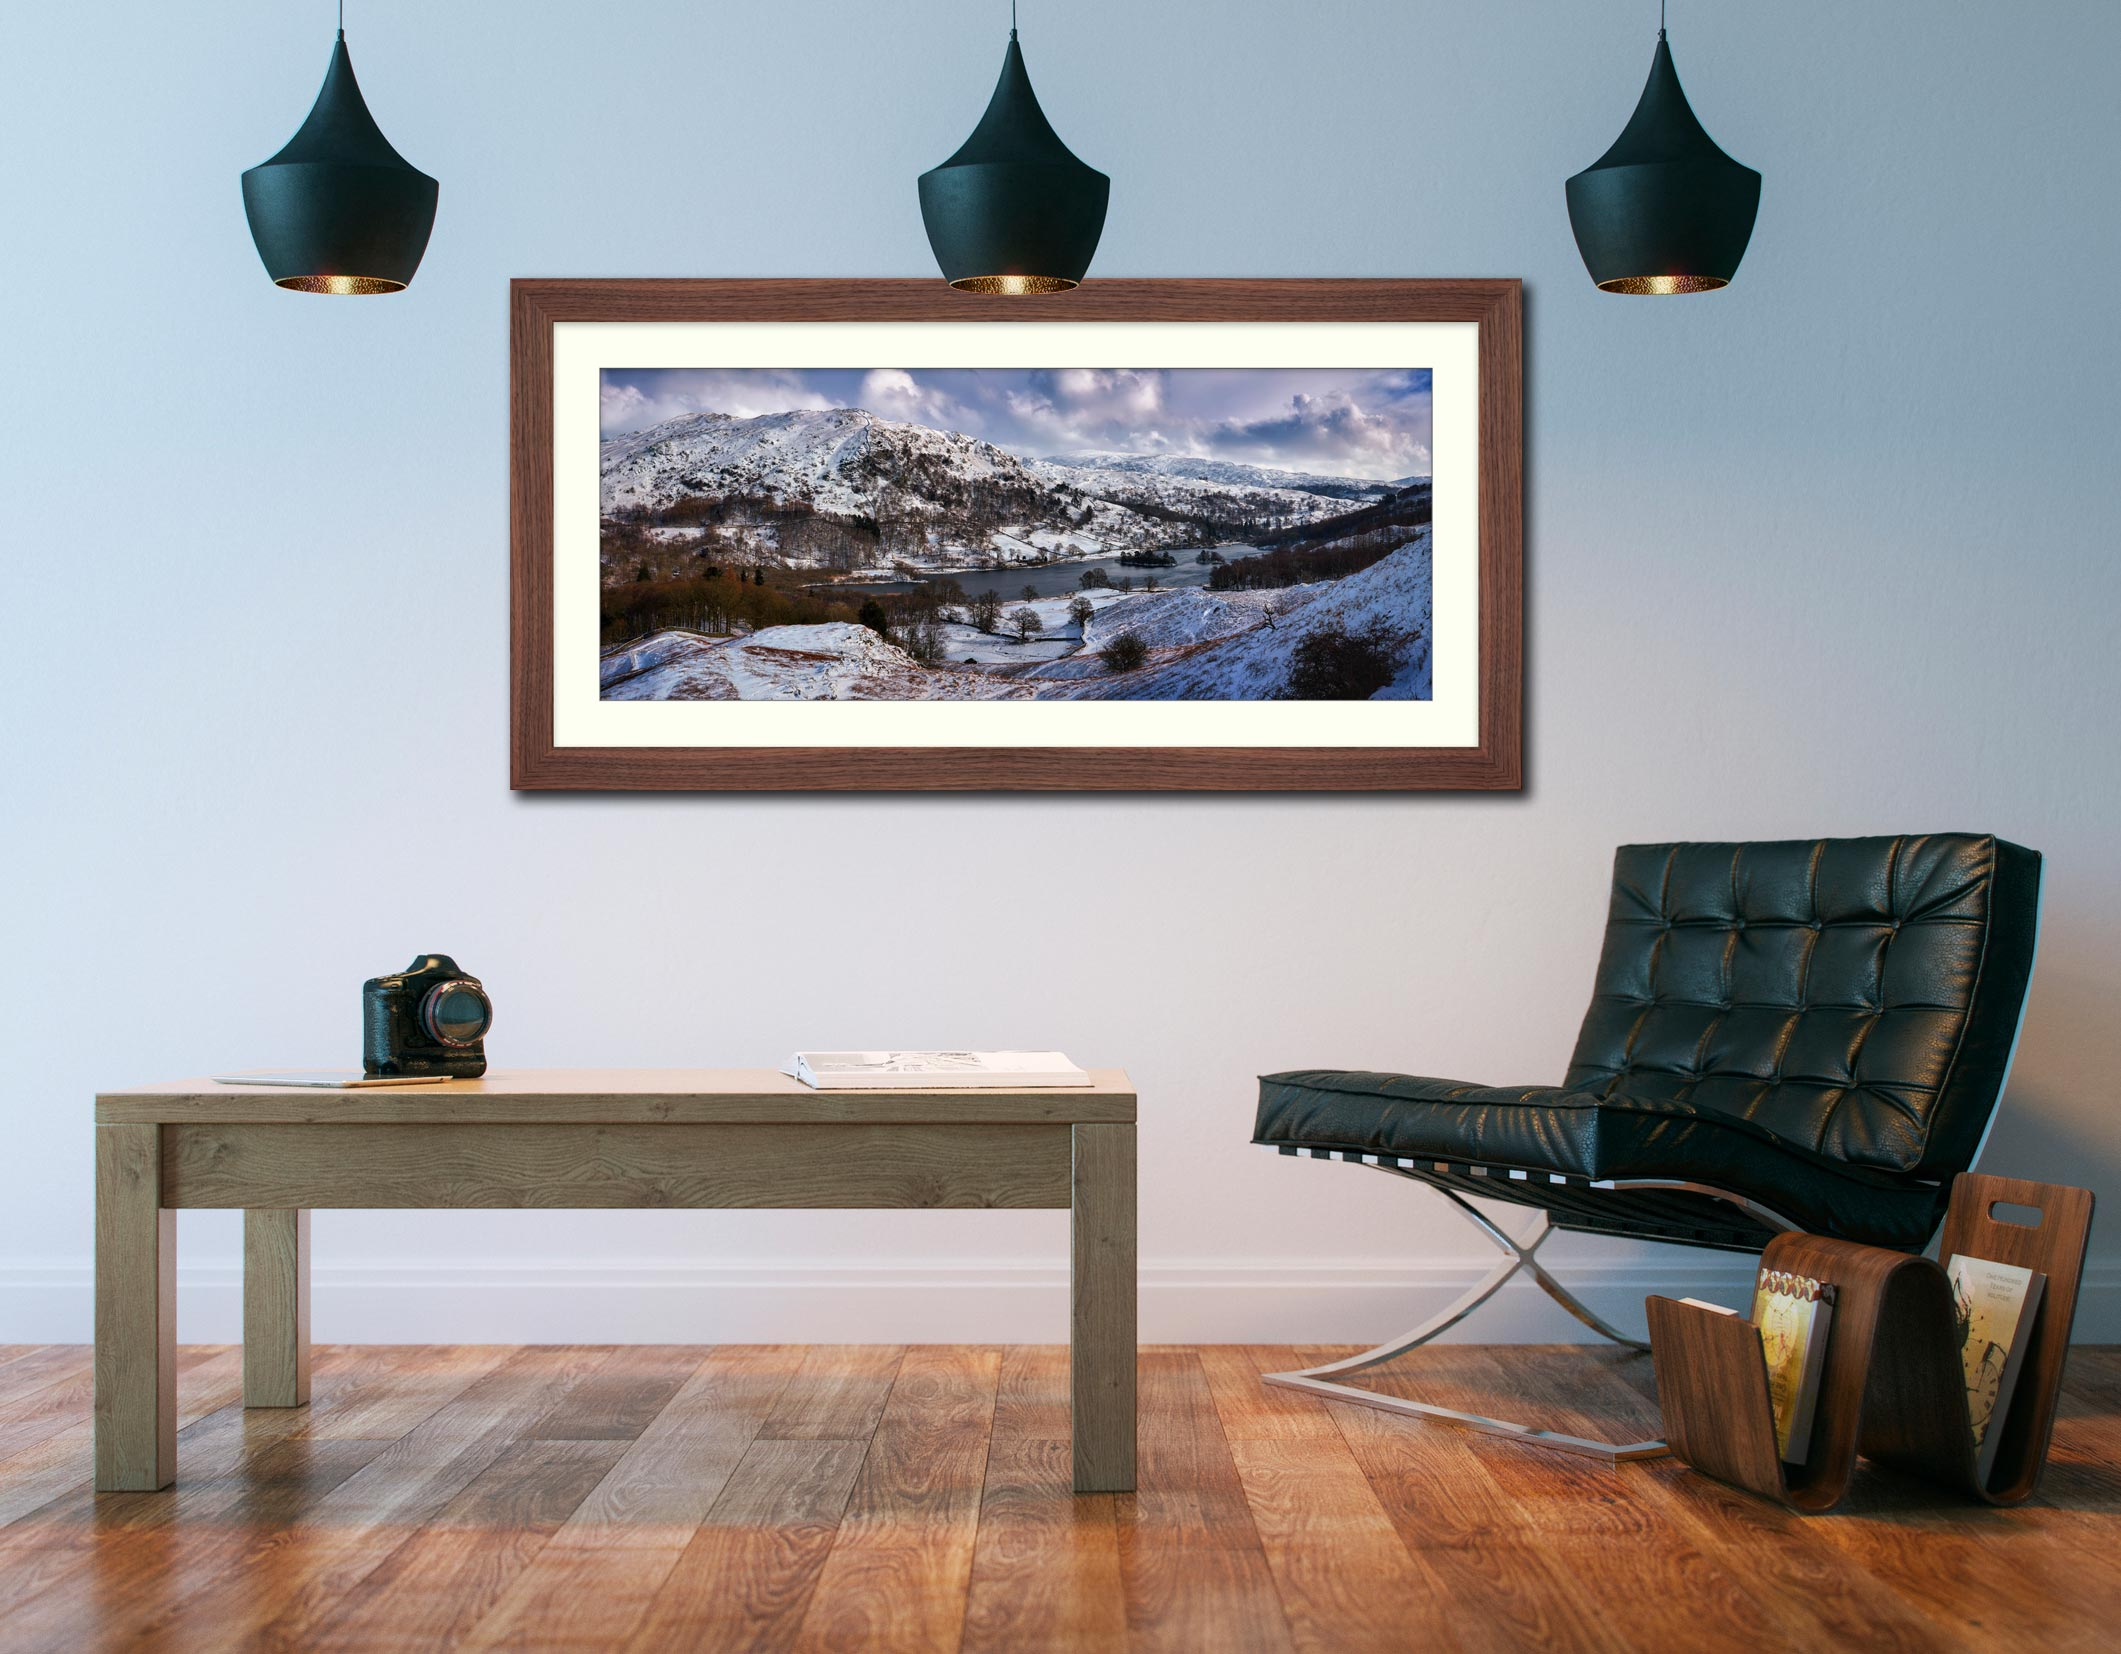 Rydal Water Winter - Framed Print with Mount on Wall